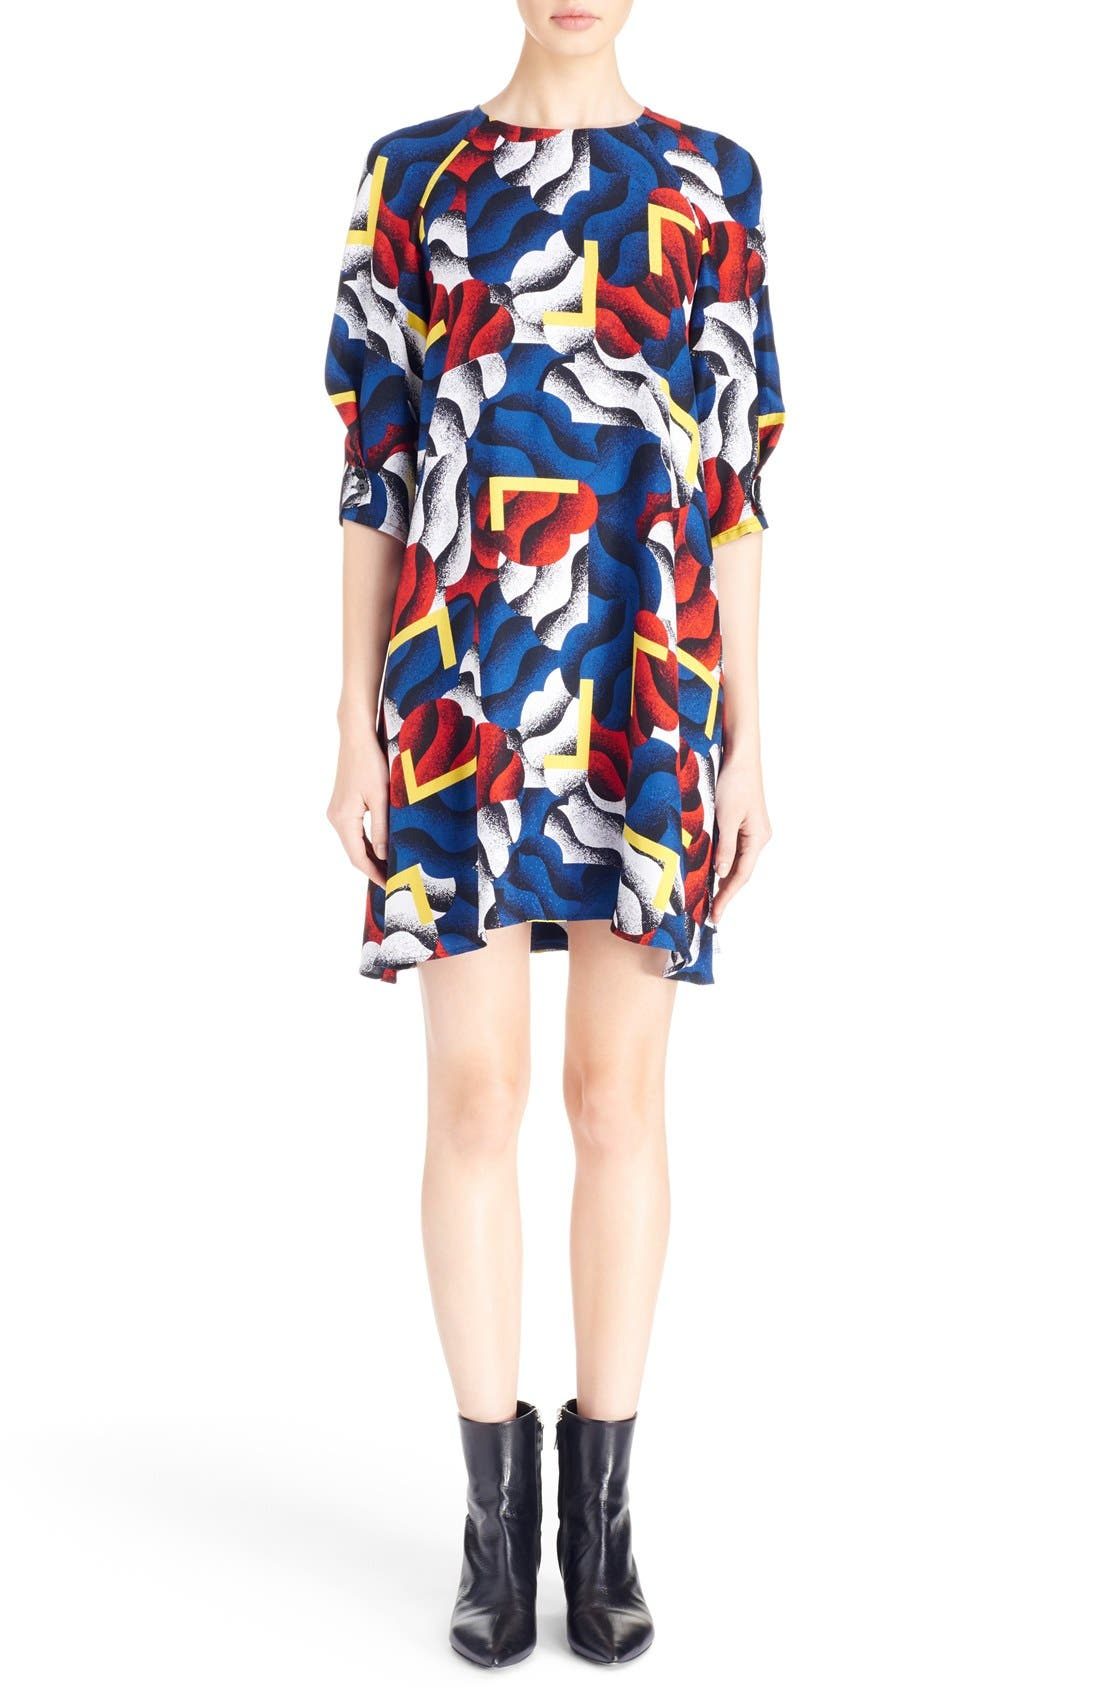 Alternate Image 1 Selected - KENZO 'Clouds & Corners' Print Silk Dress